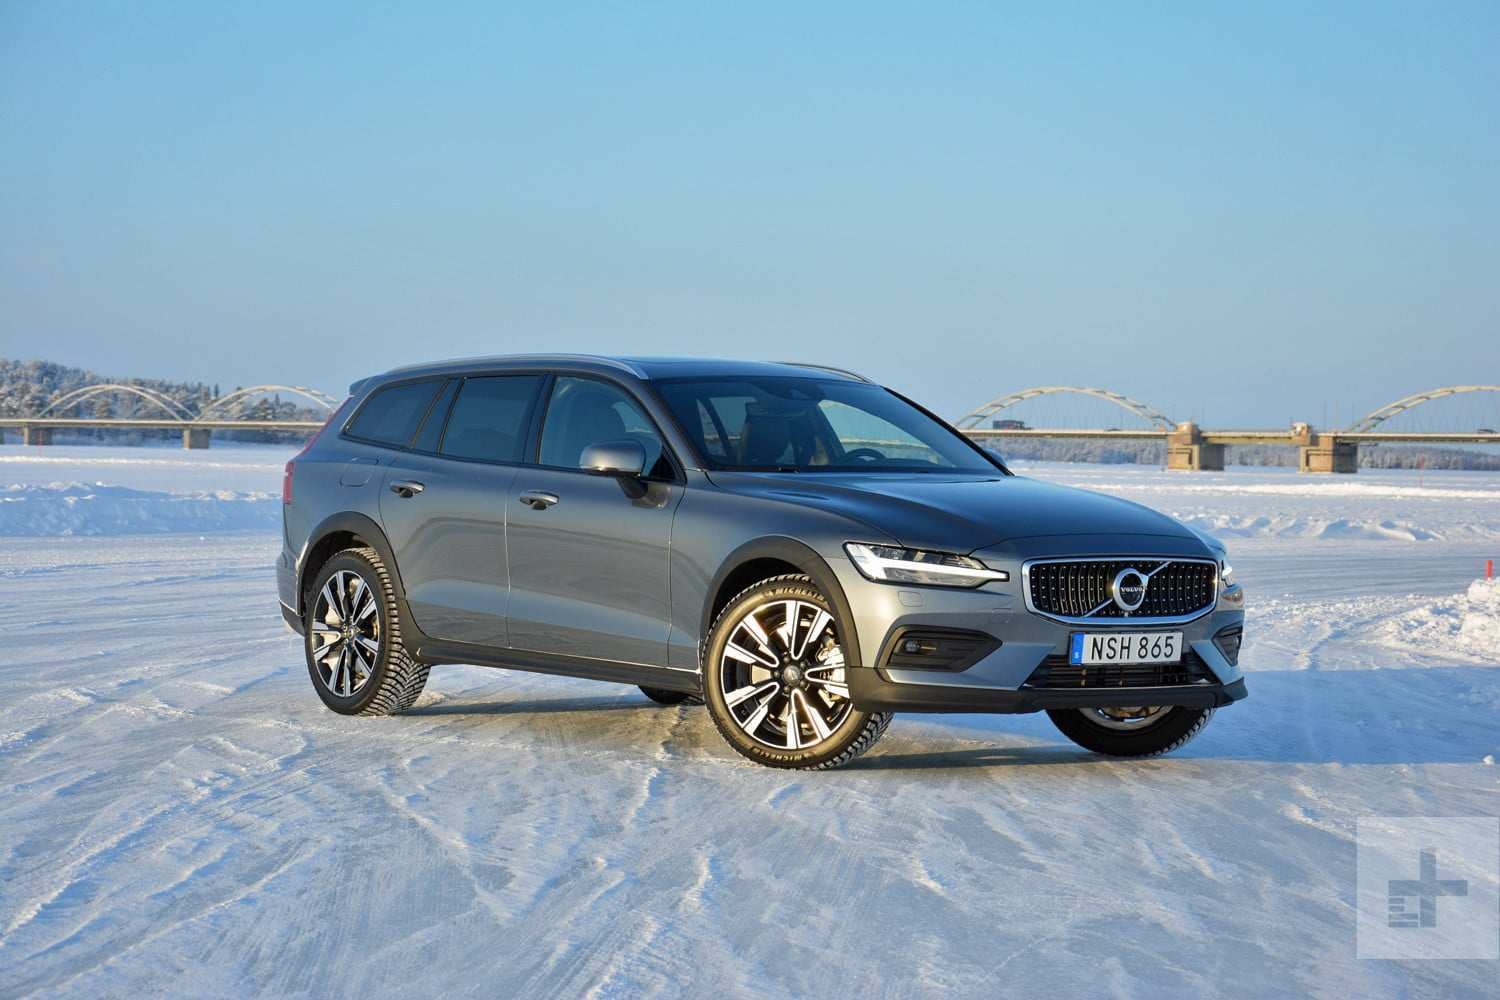 76 Great Volvo V60 Cross Country 2020 Prices by Volvo V60 Cross Country 2020